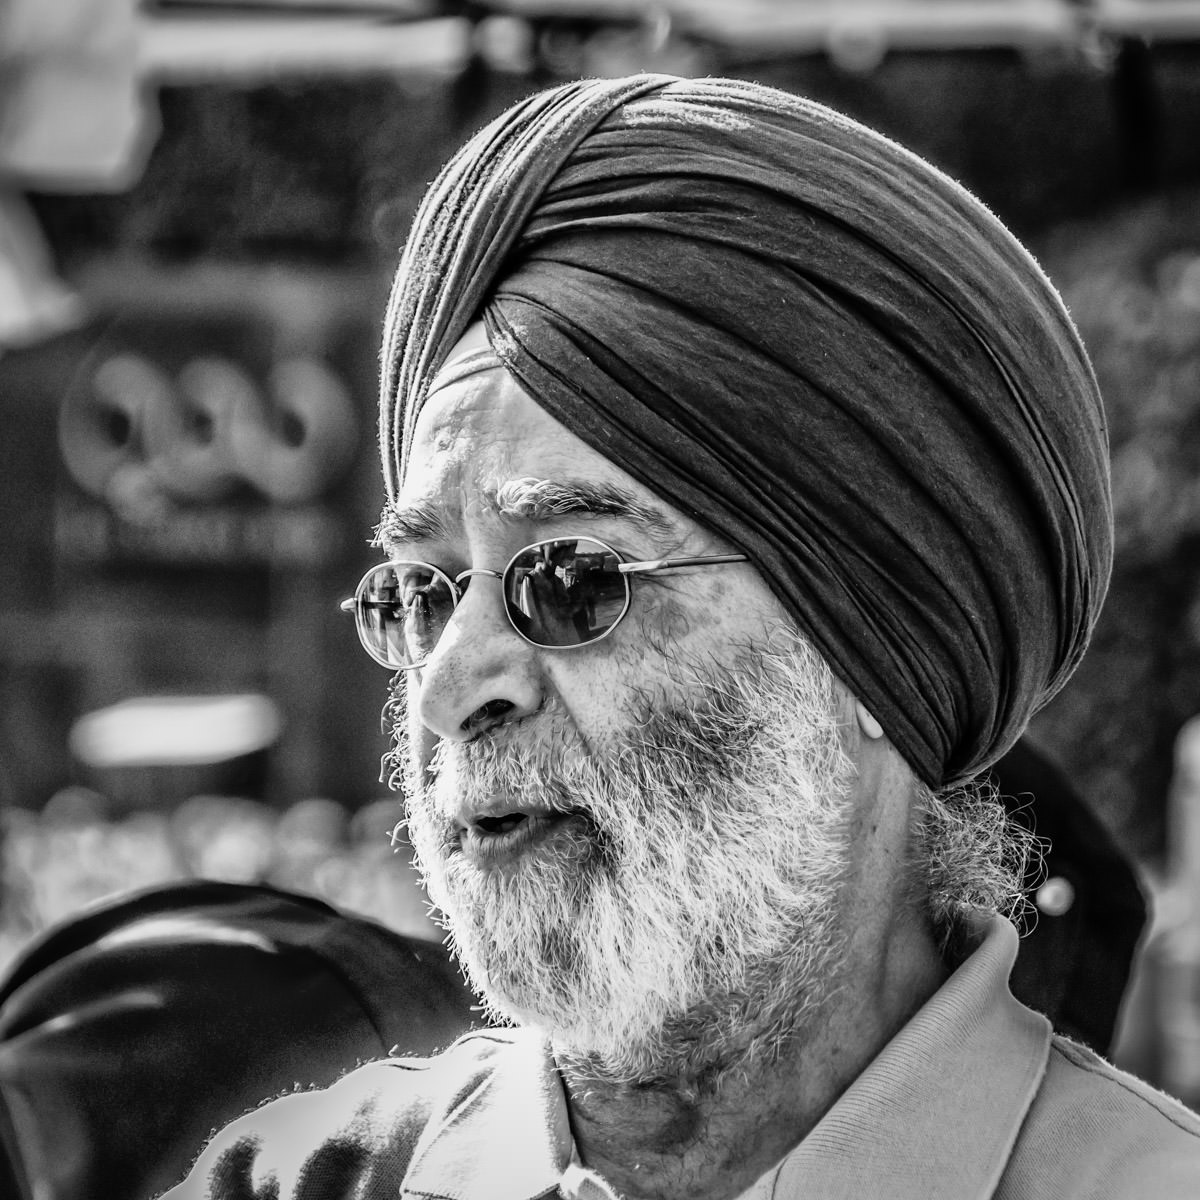 A Sikh gentleman spotted at the DFW Dragon Boat Festival, Las Colinas, Irving, Texas.